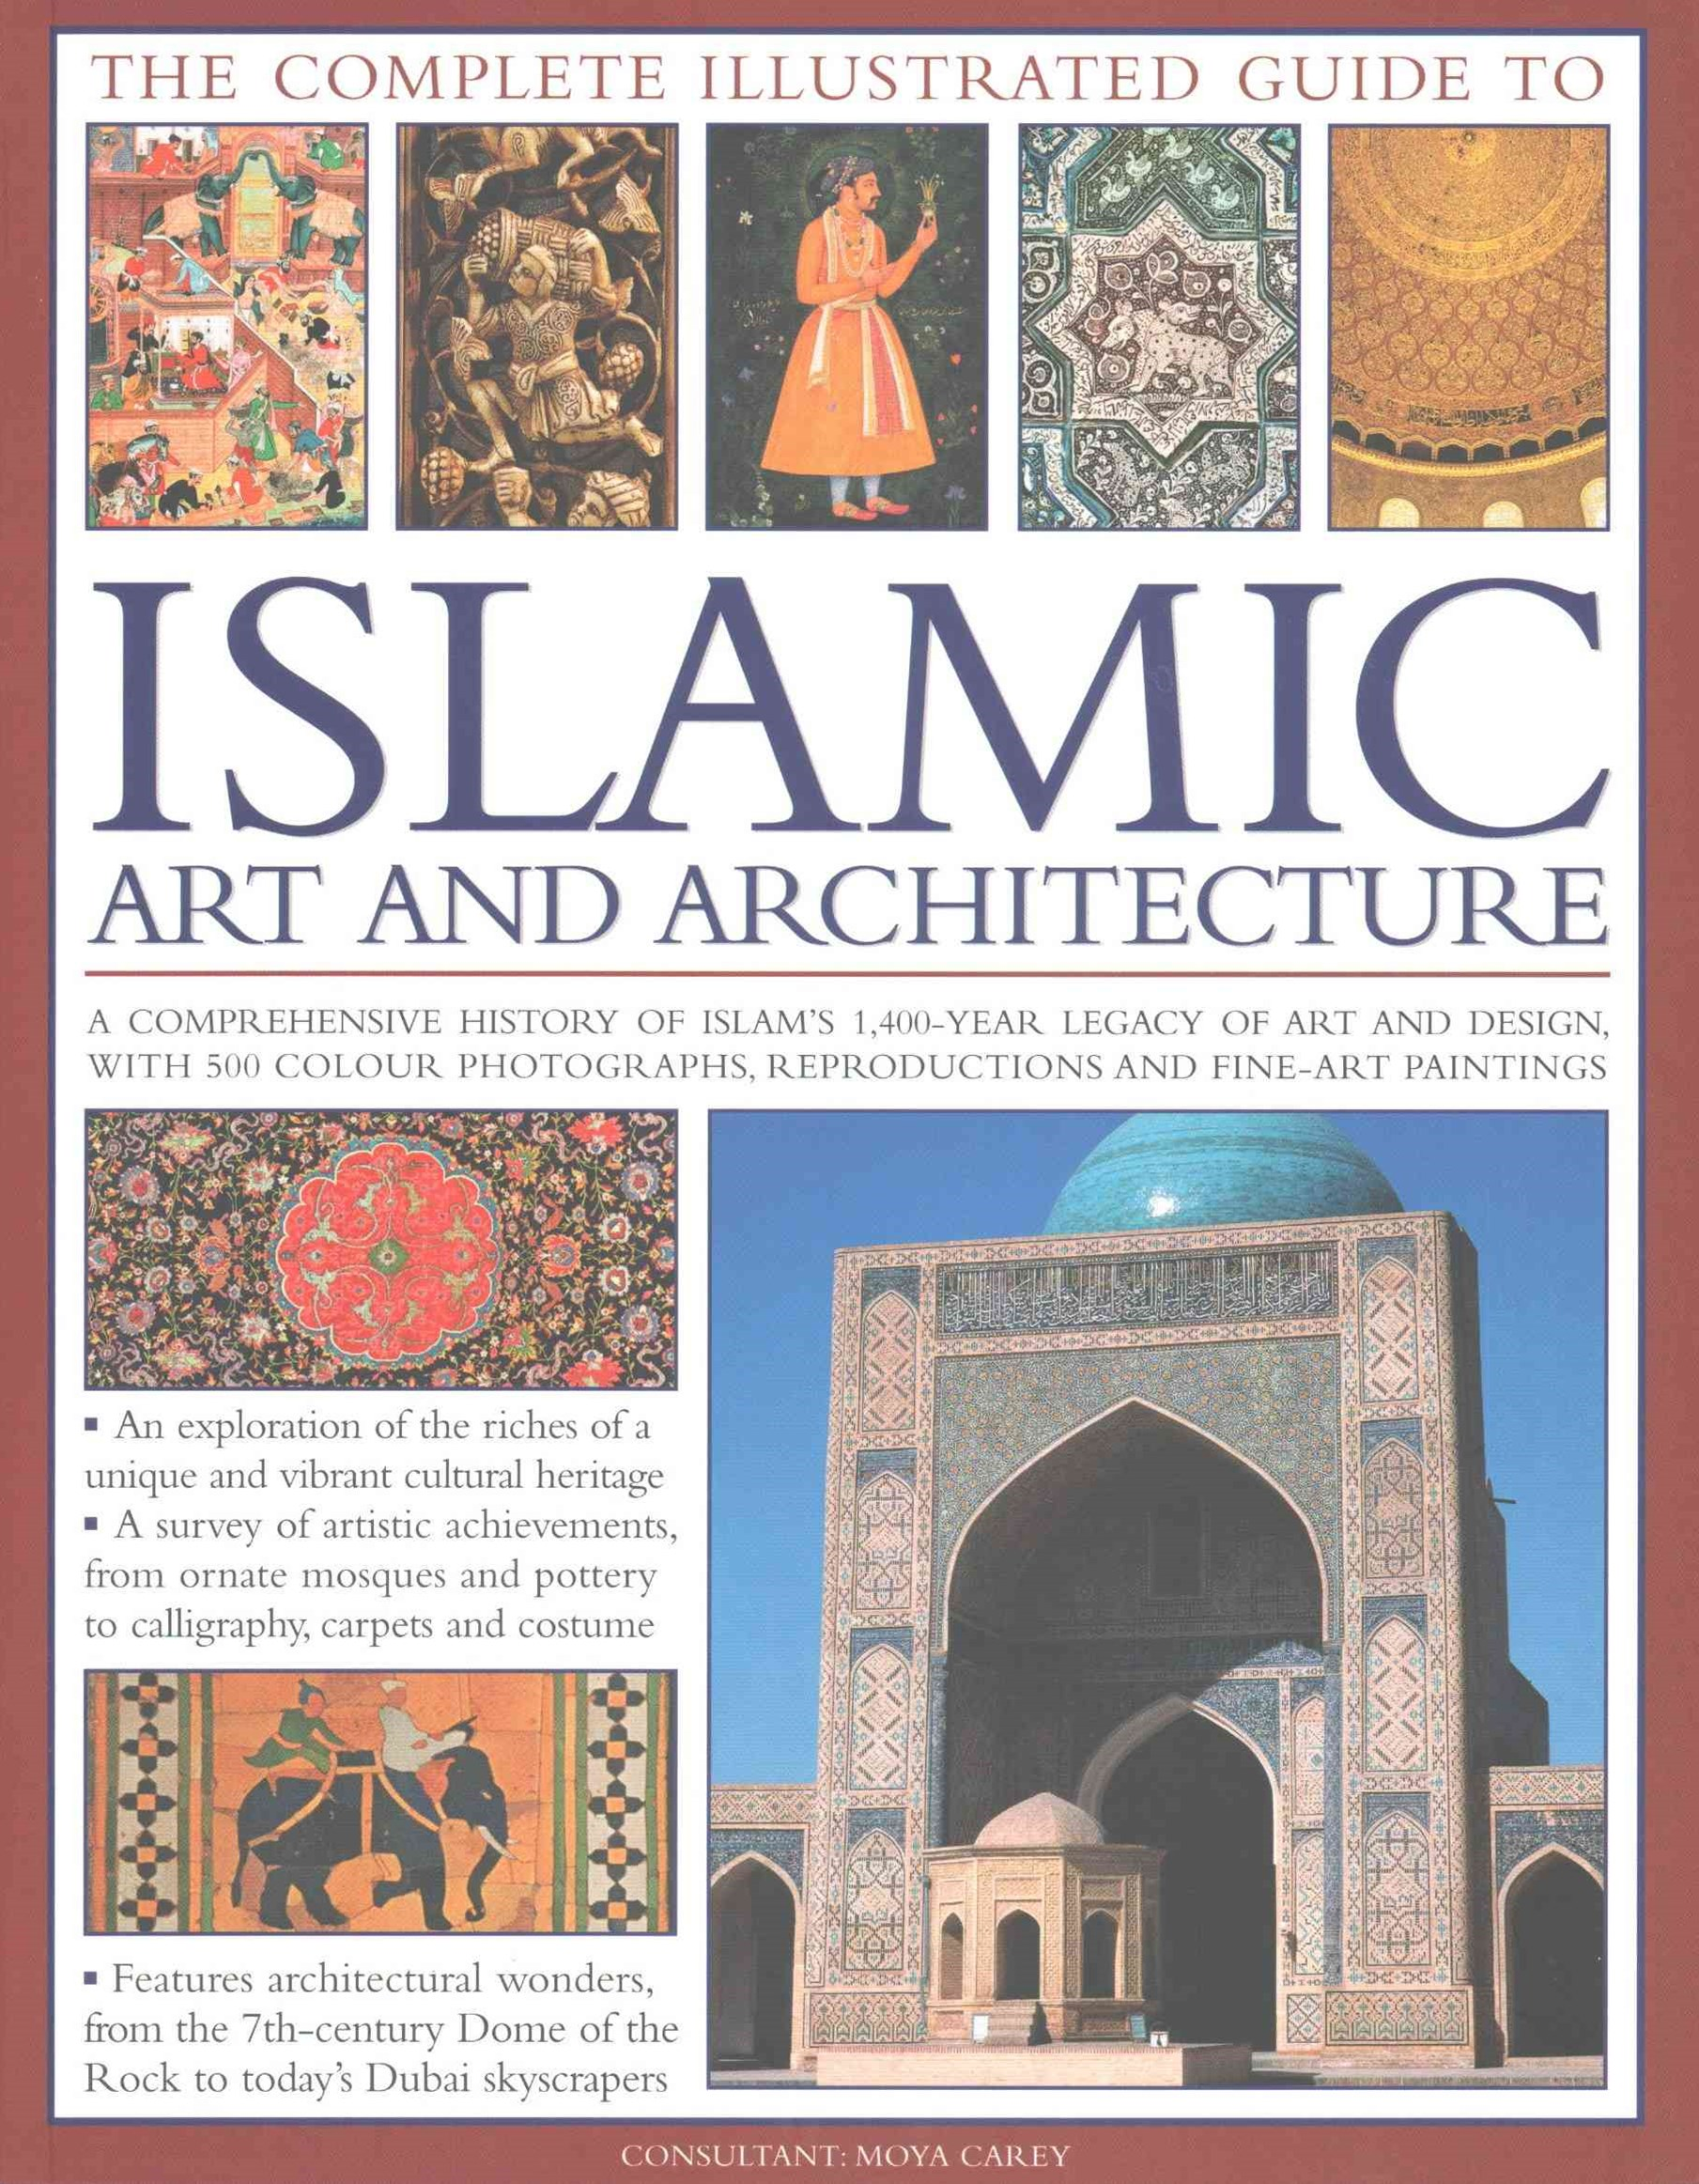 The Complete Illustrated Guide to Islamic Art and Architecture